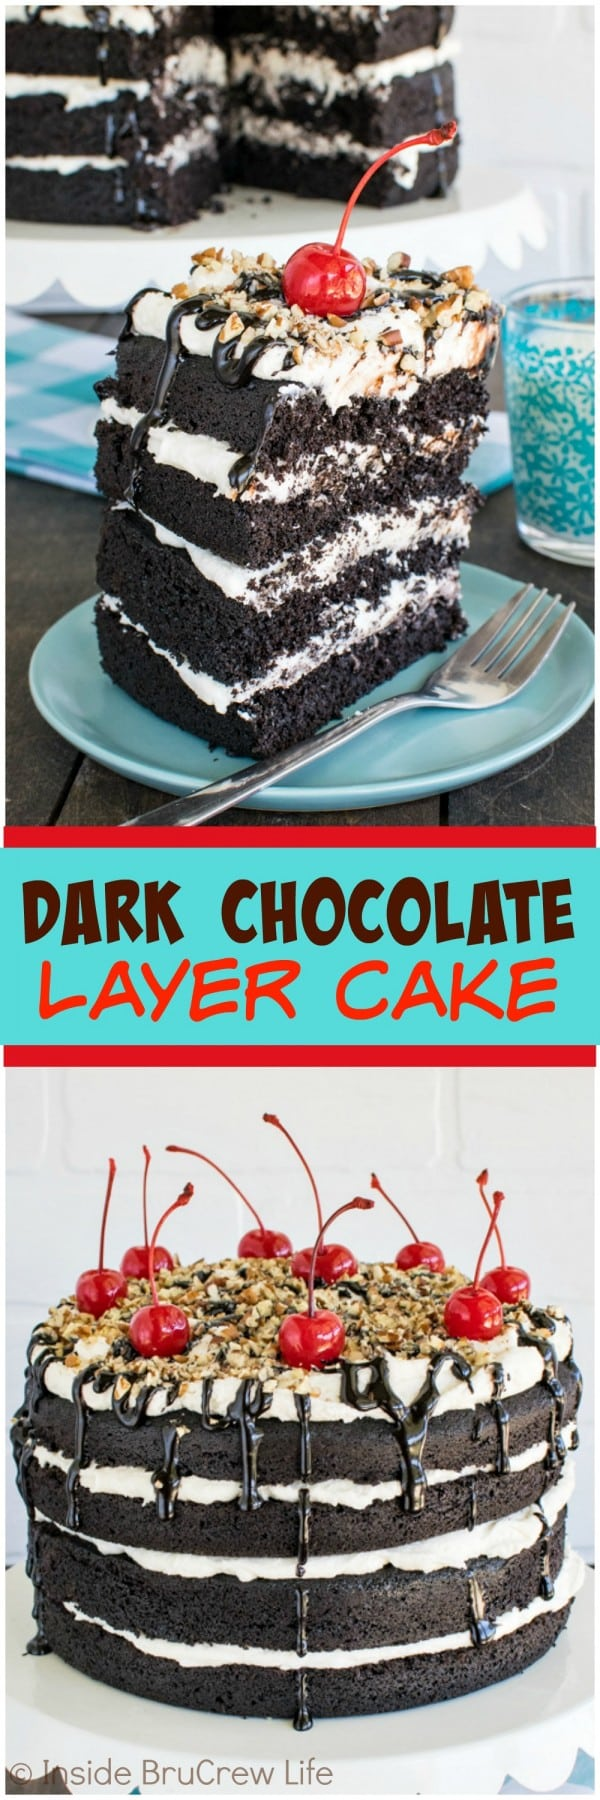 Dark Chocolate Layer Cake - 4 layers of cake and frosting topped with hot fudge, pecans, and cherries makes the perfect dessert recipe to celebrate anything with!